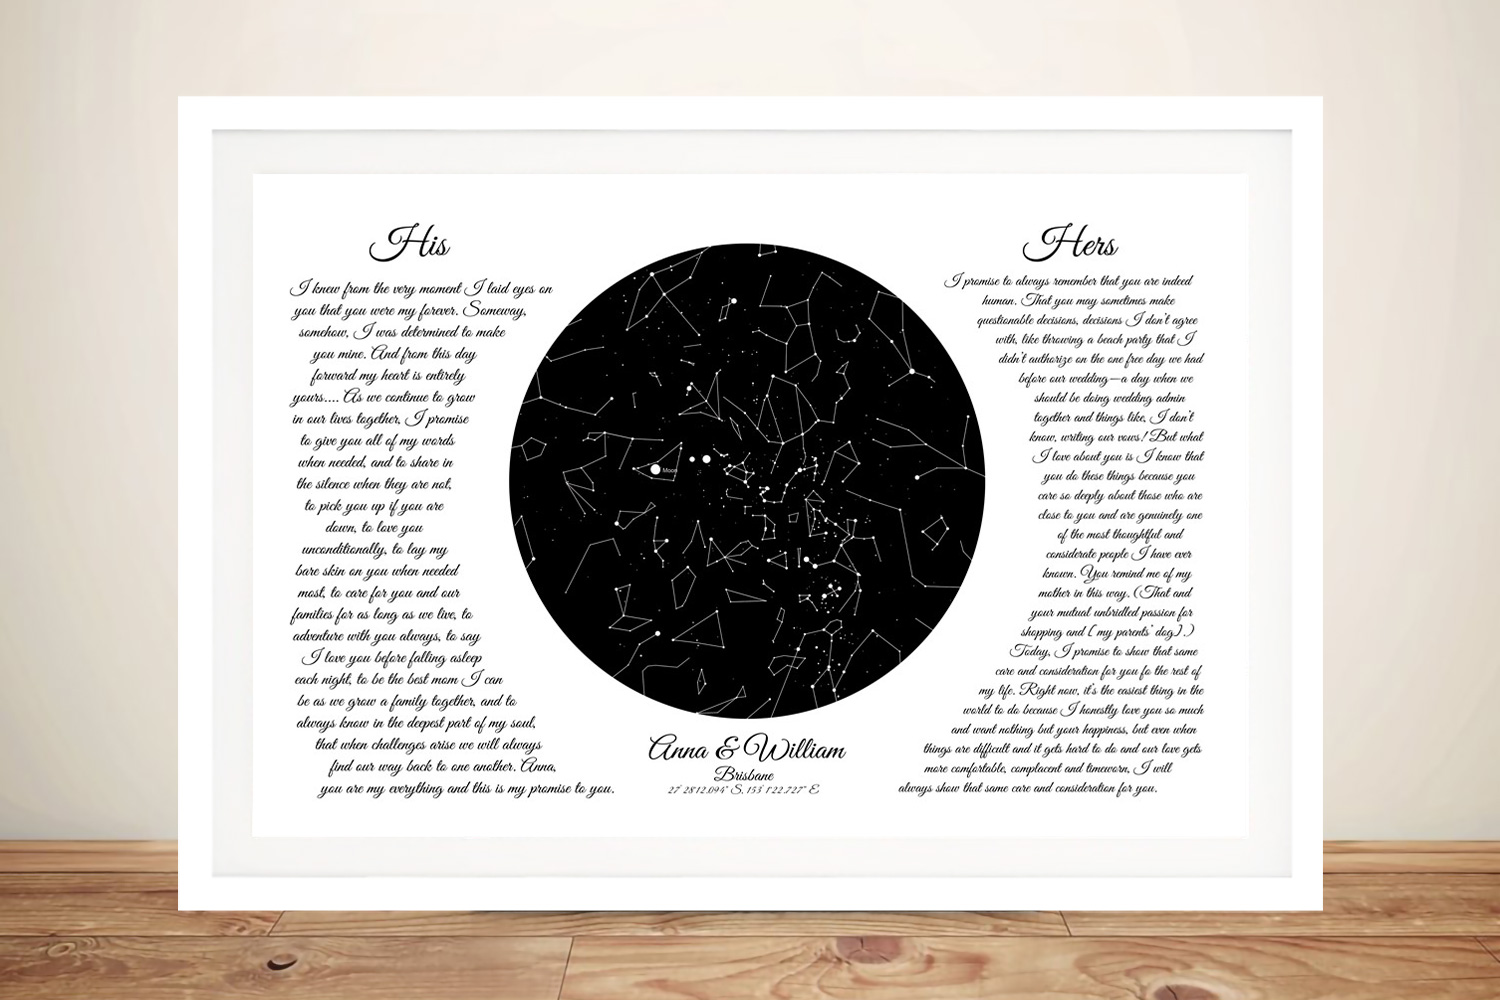 Buy a Framed Wedding Vows Star Chart | Custom Star Map with Wedding Vows